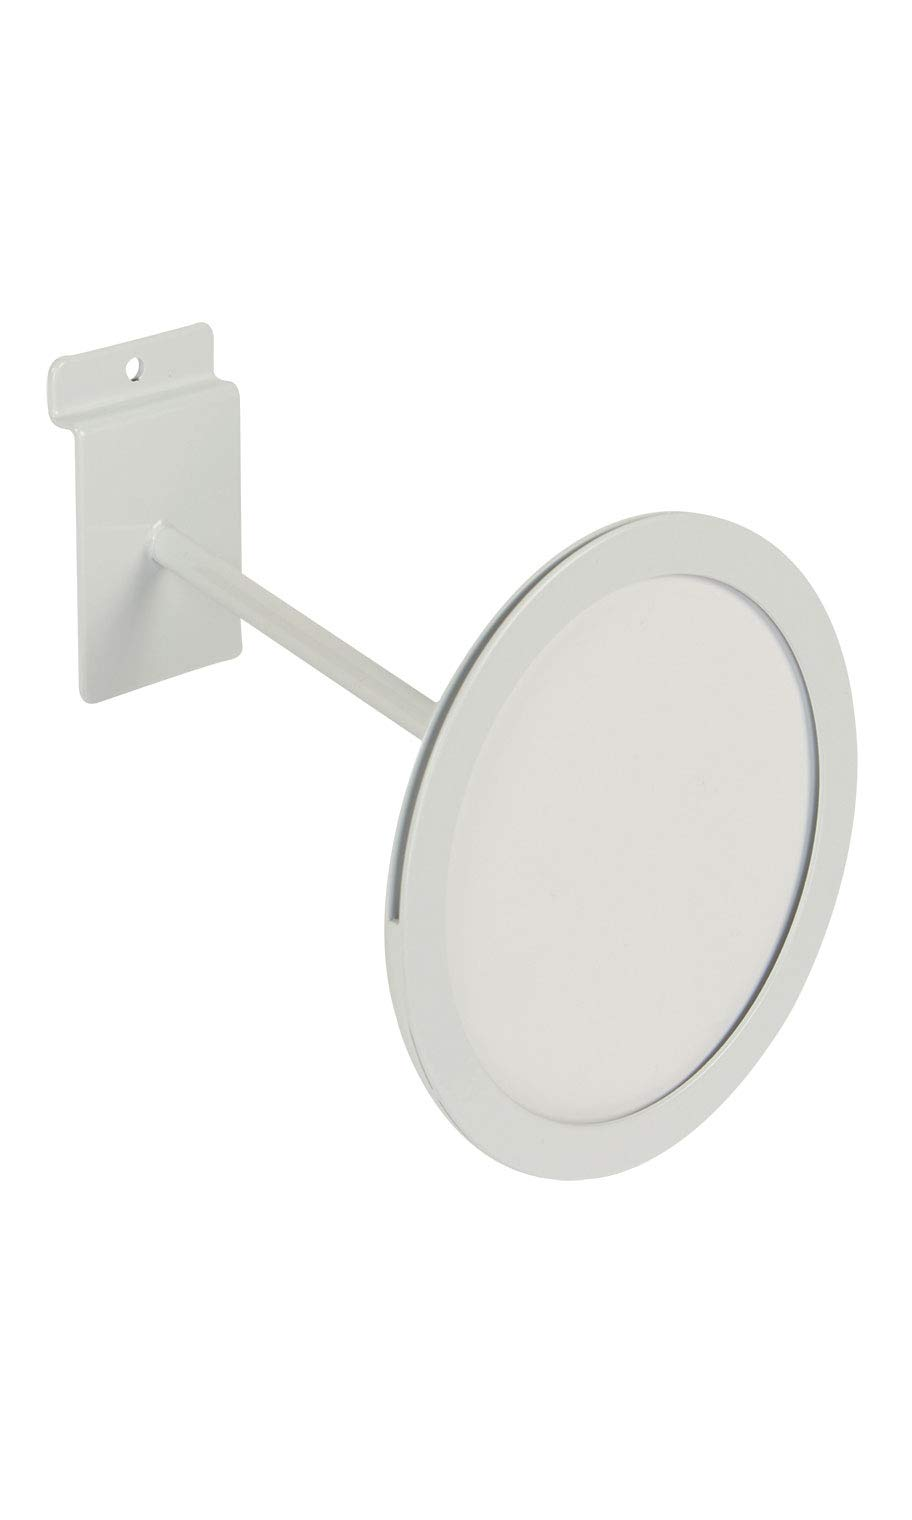 Circular White Faceout Sign Holder for Slatwall - Holds 5 1/2'' Diameter Signs